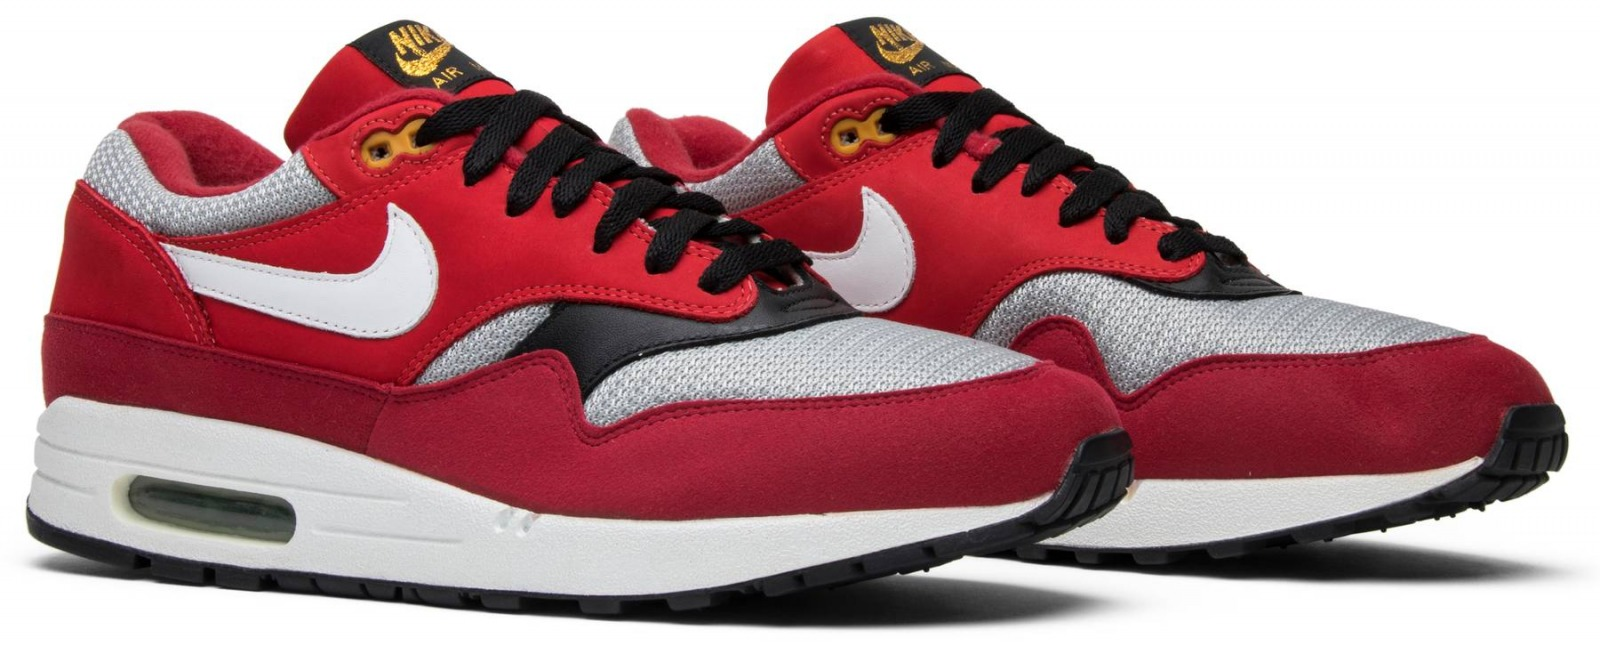 NIKE AIR MAX URAWA URAWA DRAGONS